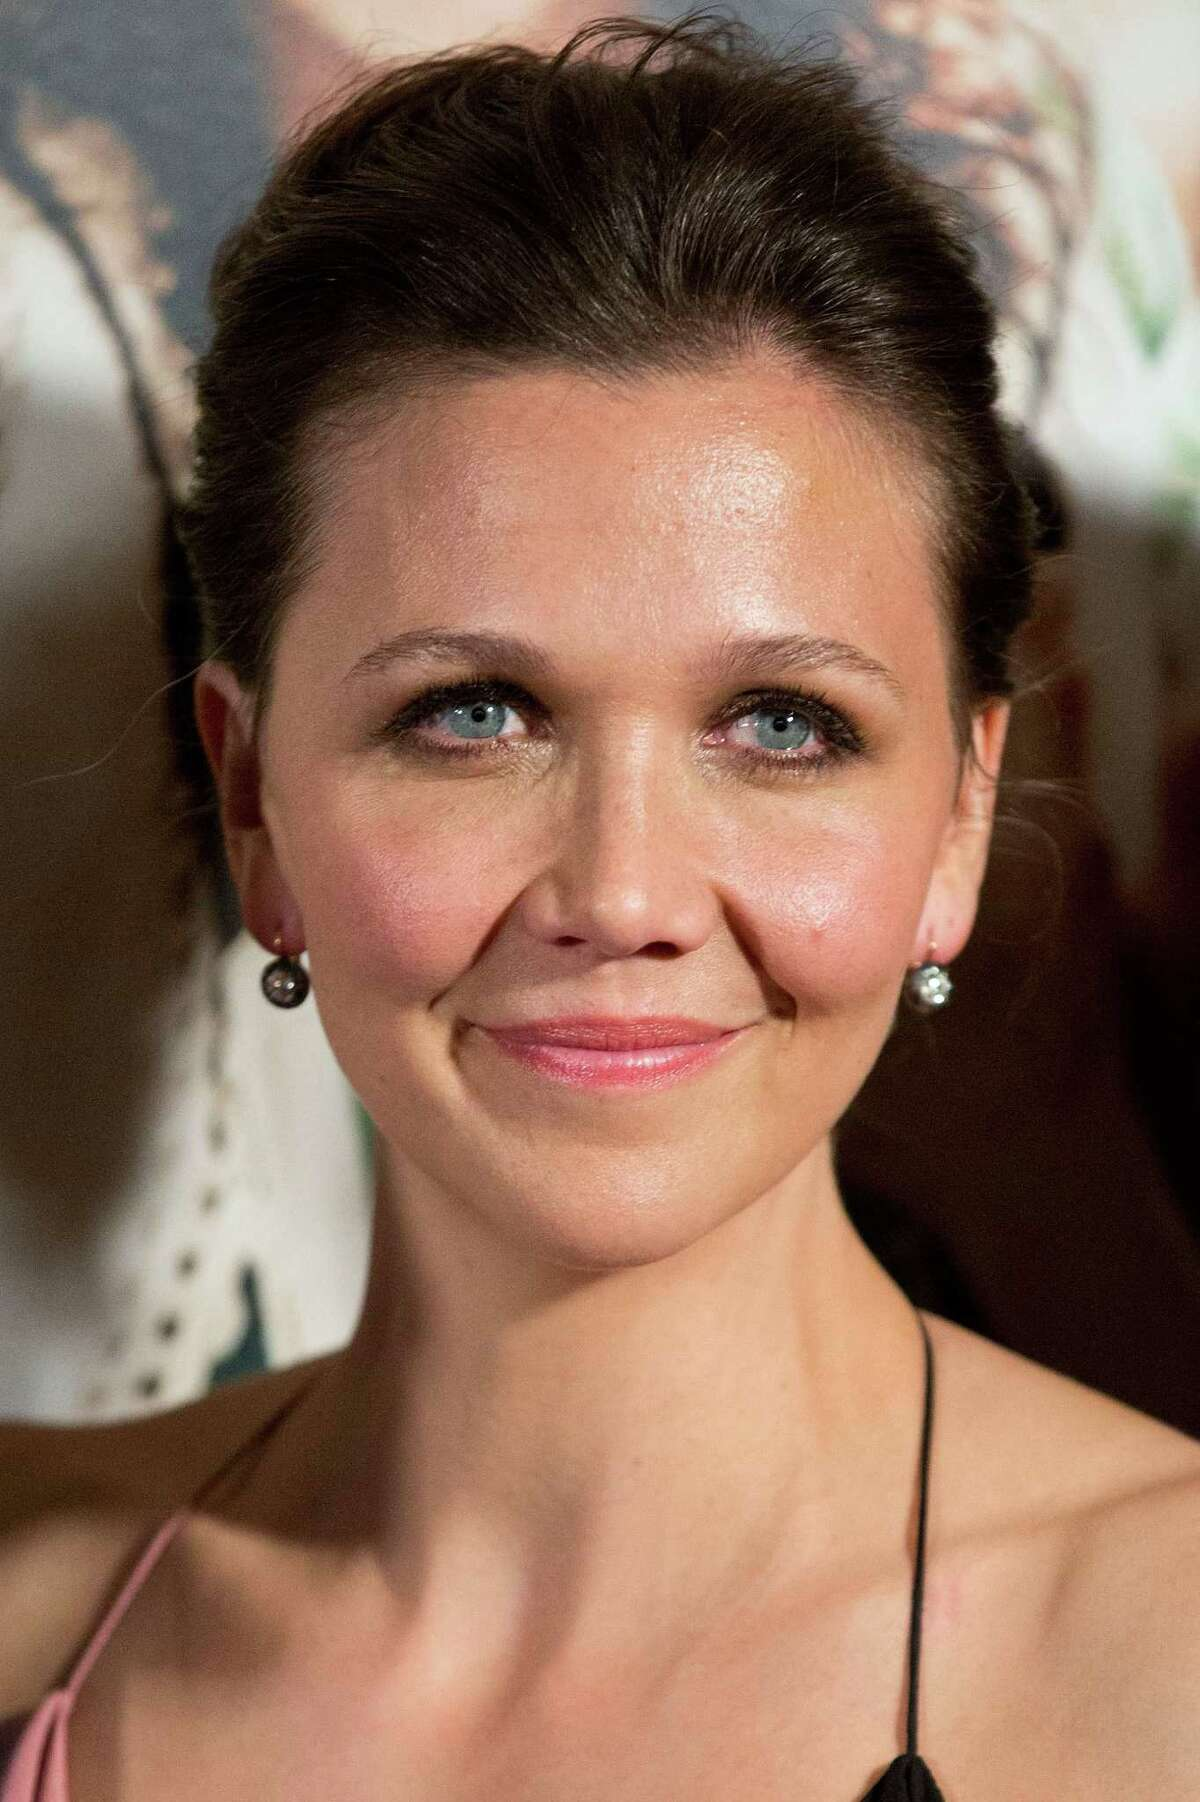 Maggie Gyllenhaal attends the 'Won't Back Down' premiere at Ziegfeld Theater on Sept. 23, 2012 in New York. (Photo by Dario Cantatore/Invision/AP)